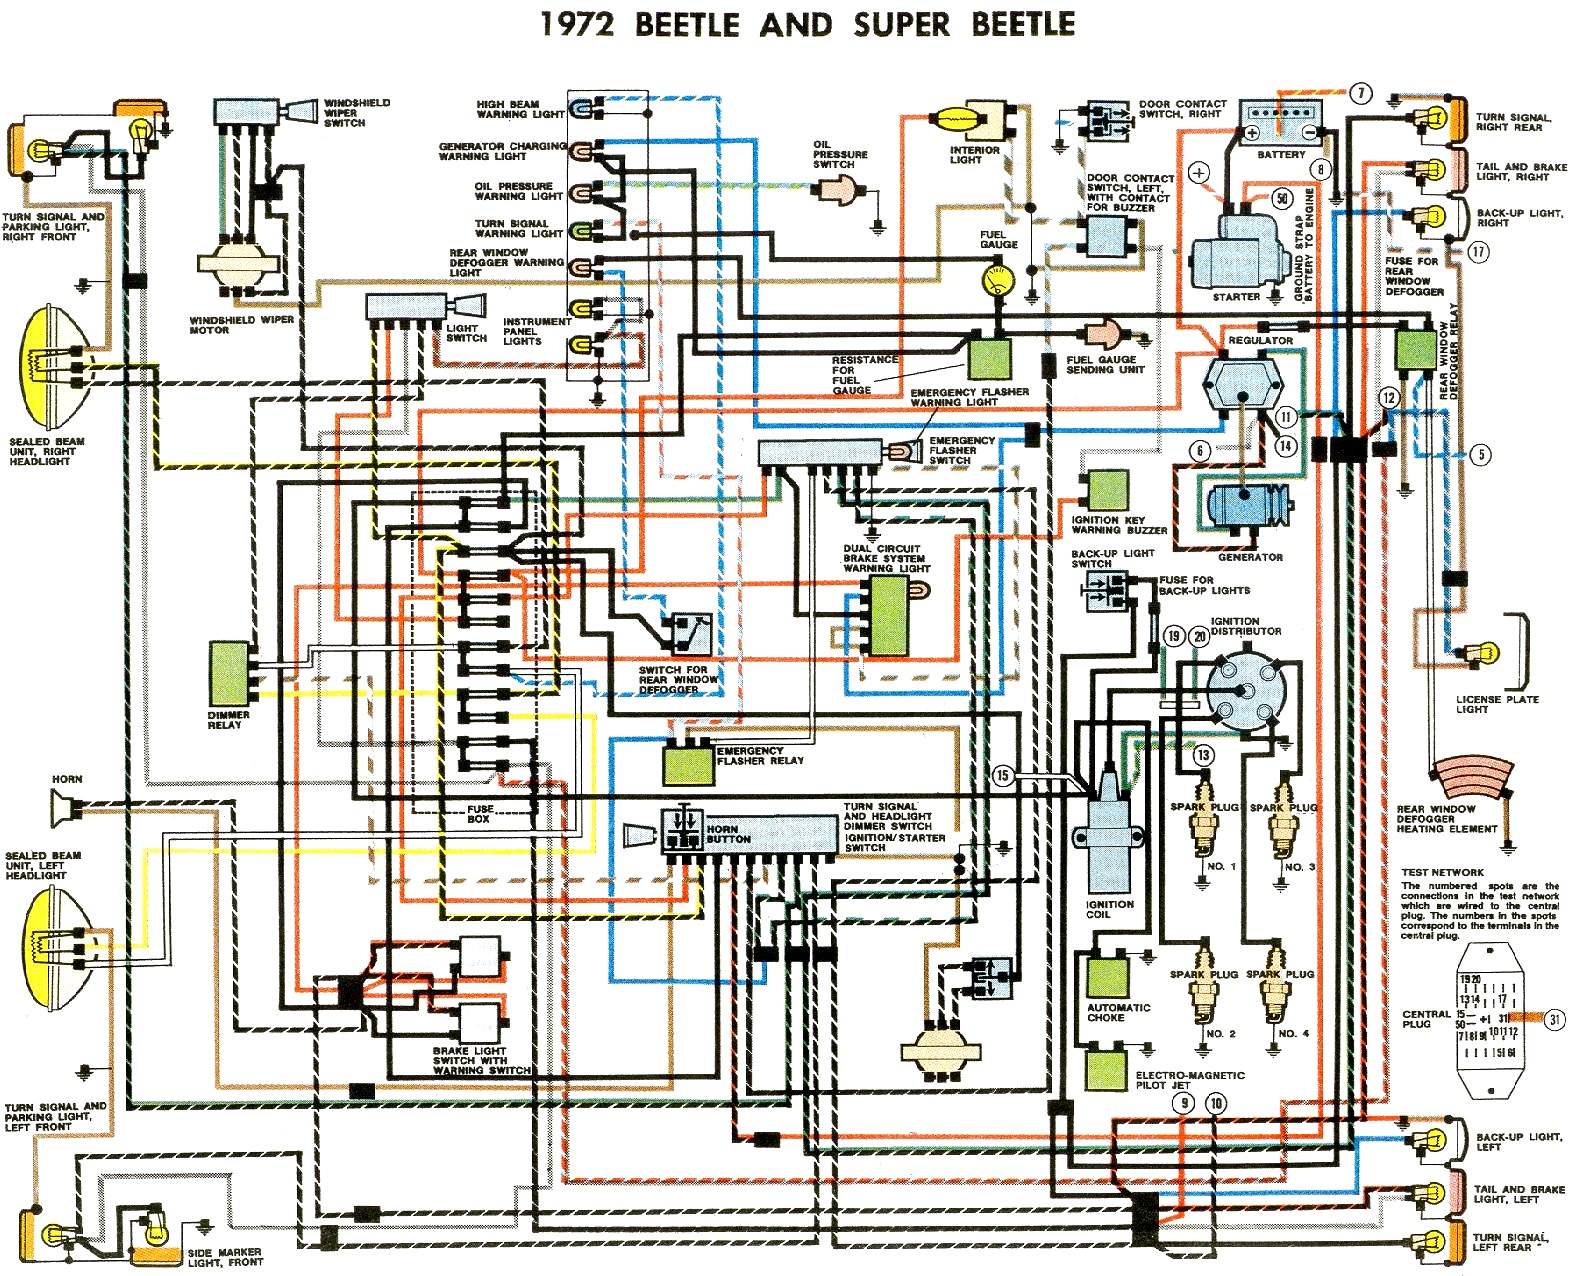 bug_72 1972 beetle wiring diagram thegoldenbug com wiring diagram for 1972 vw beetle at sewacar.co